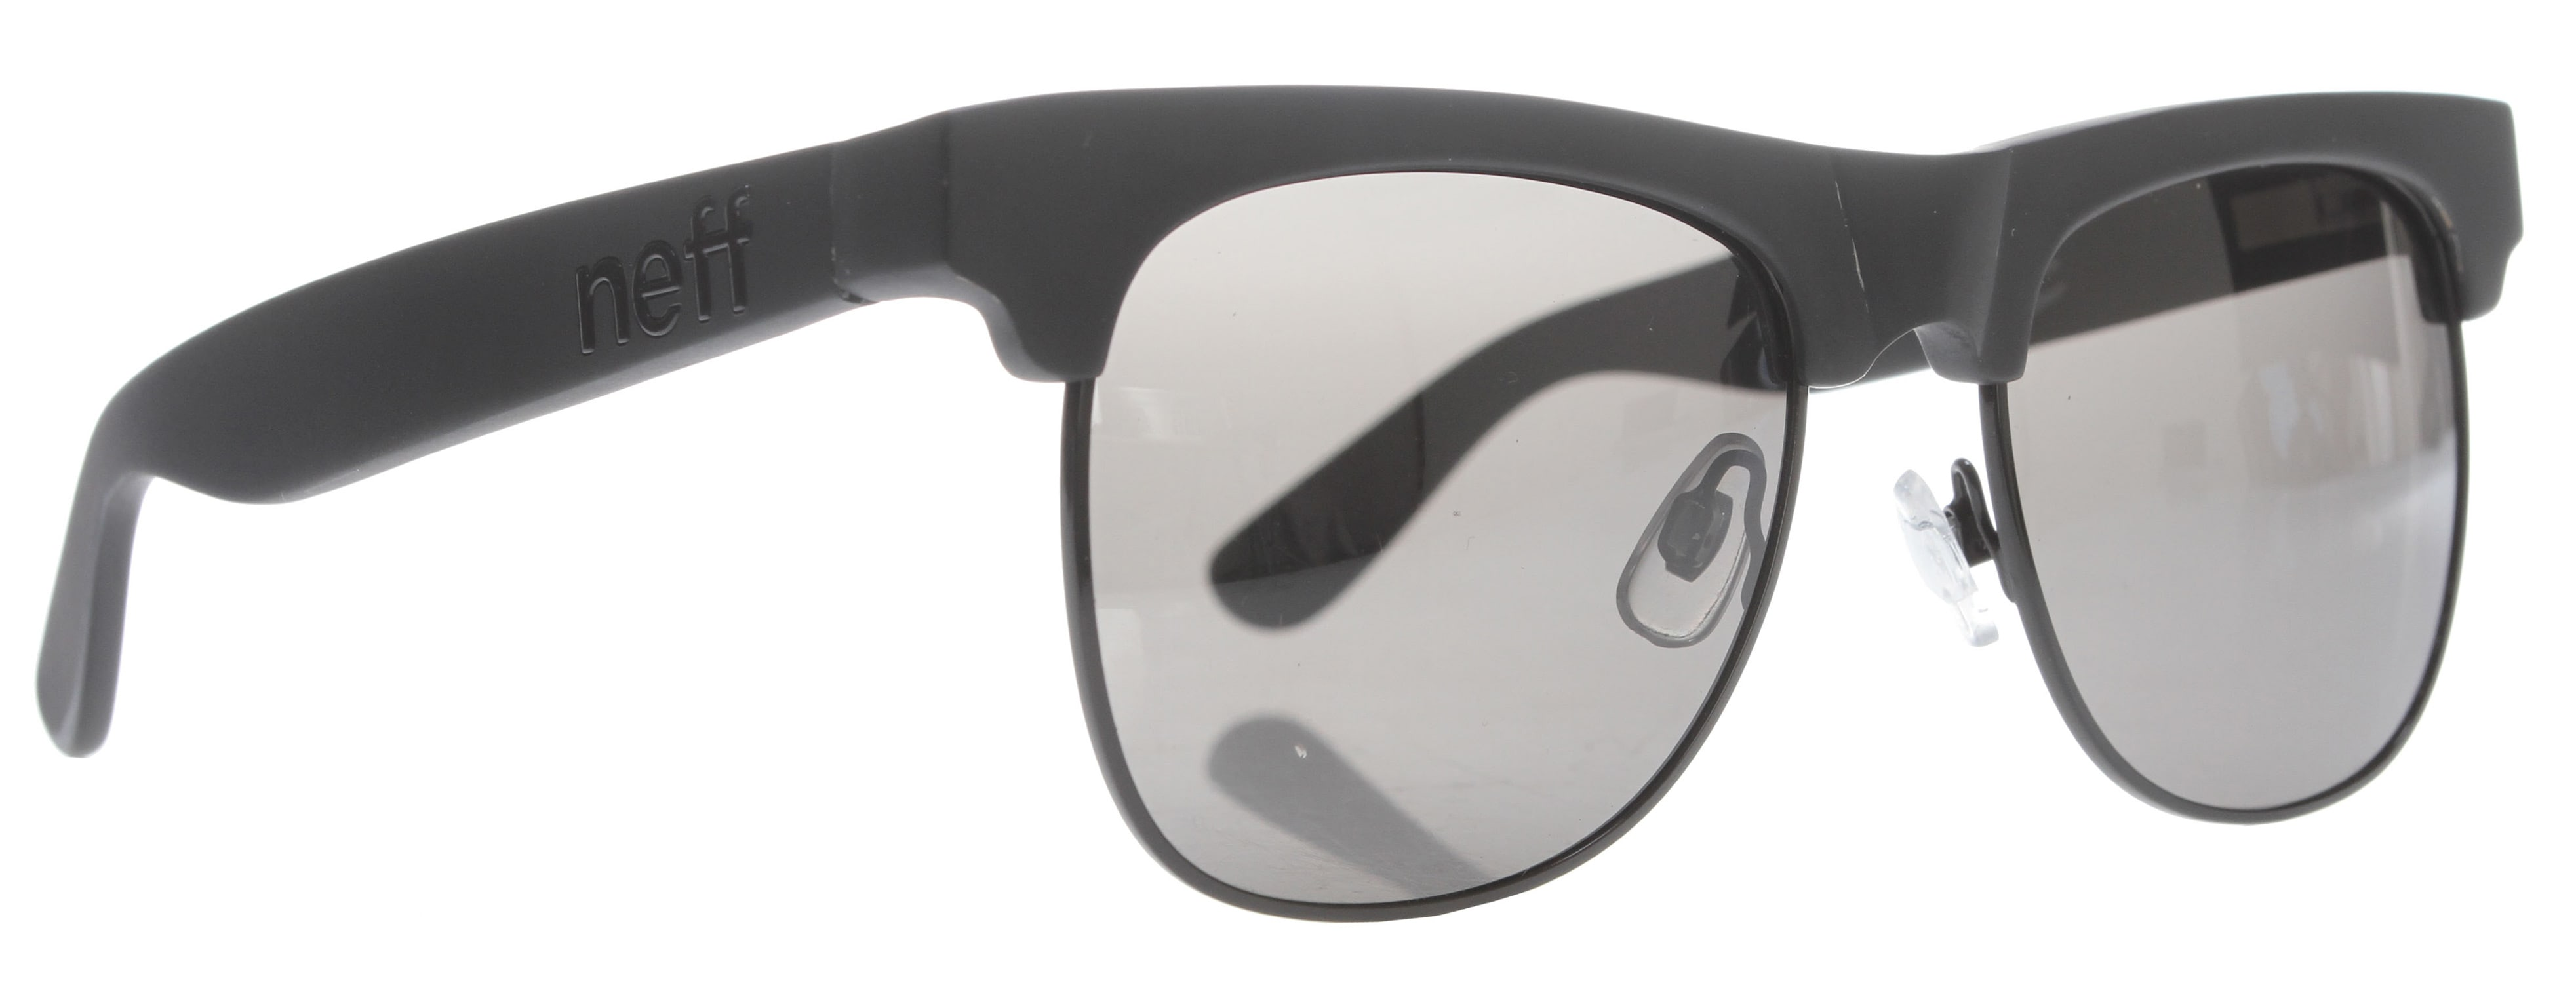 mens oakley sunglasses on sale  vice sunglasses